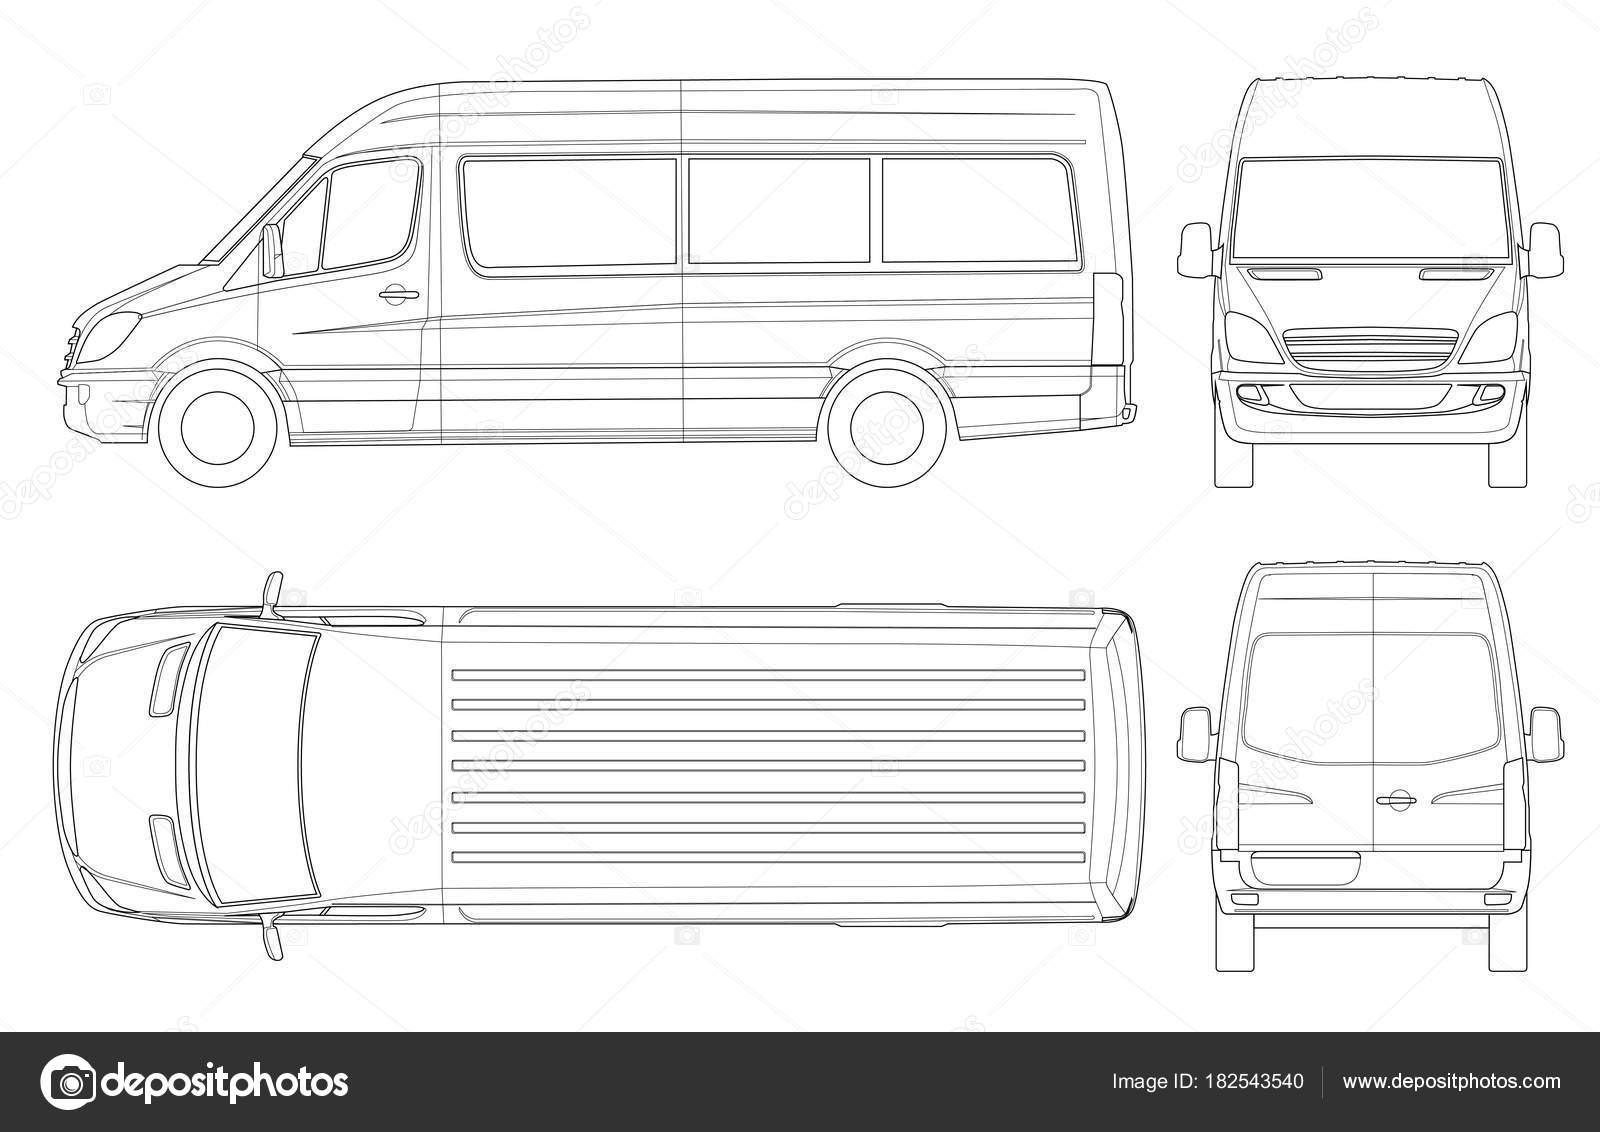 van drawing volkswagen van drawing at getdrawings free download drawing van